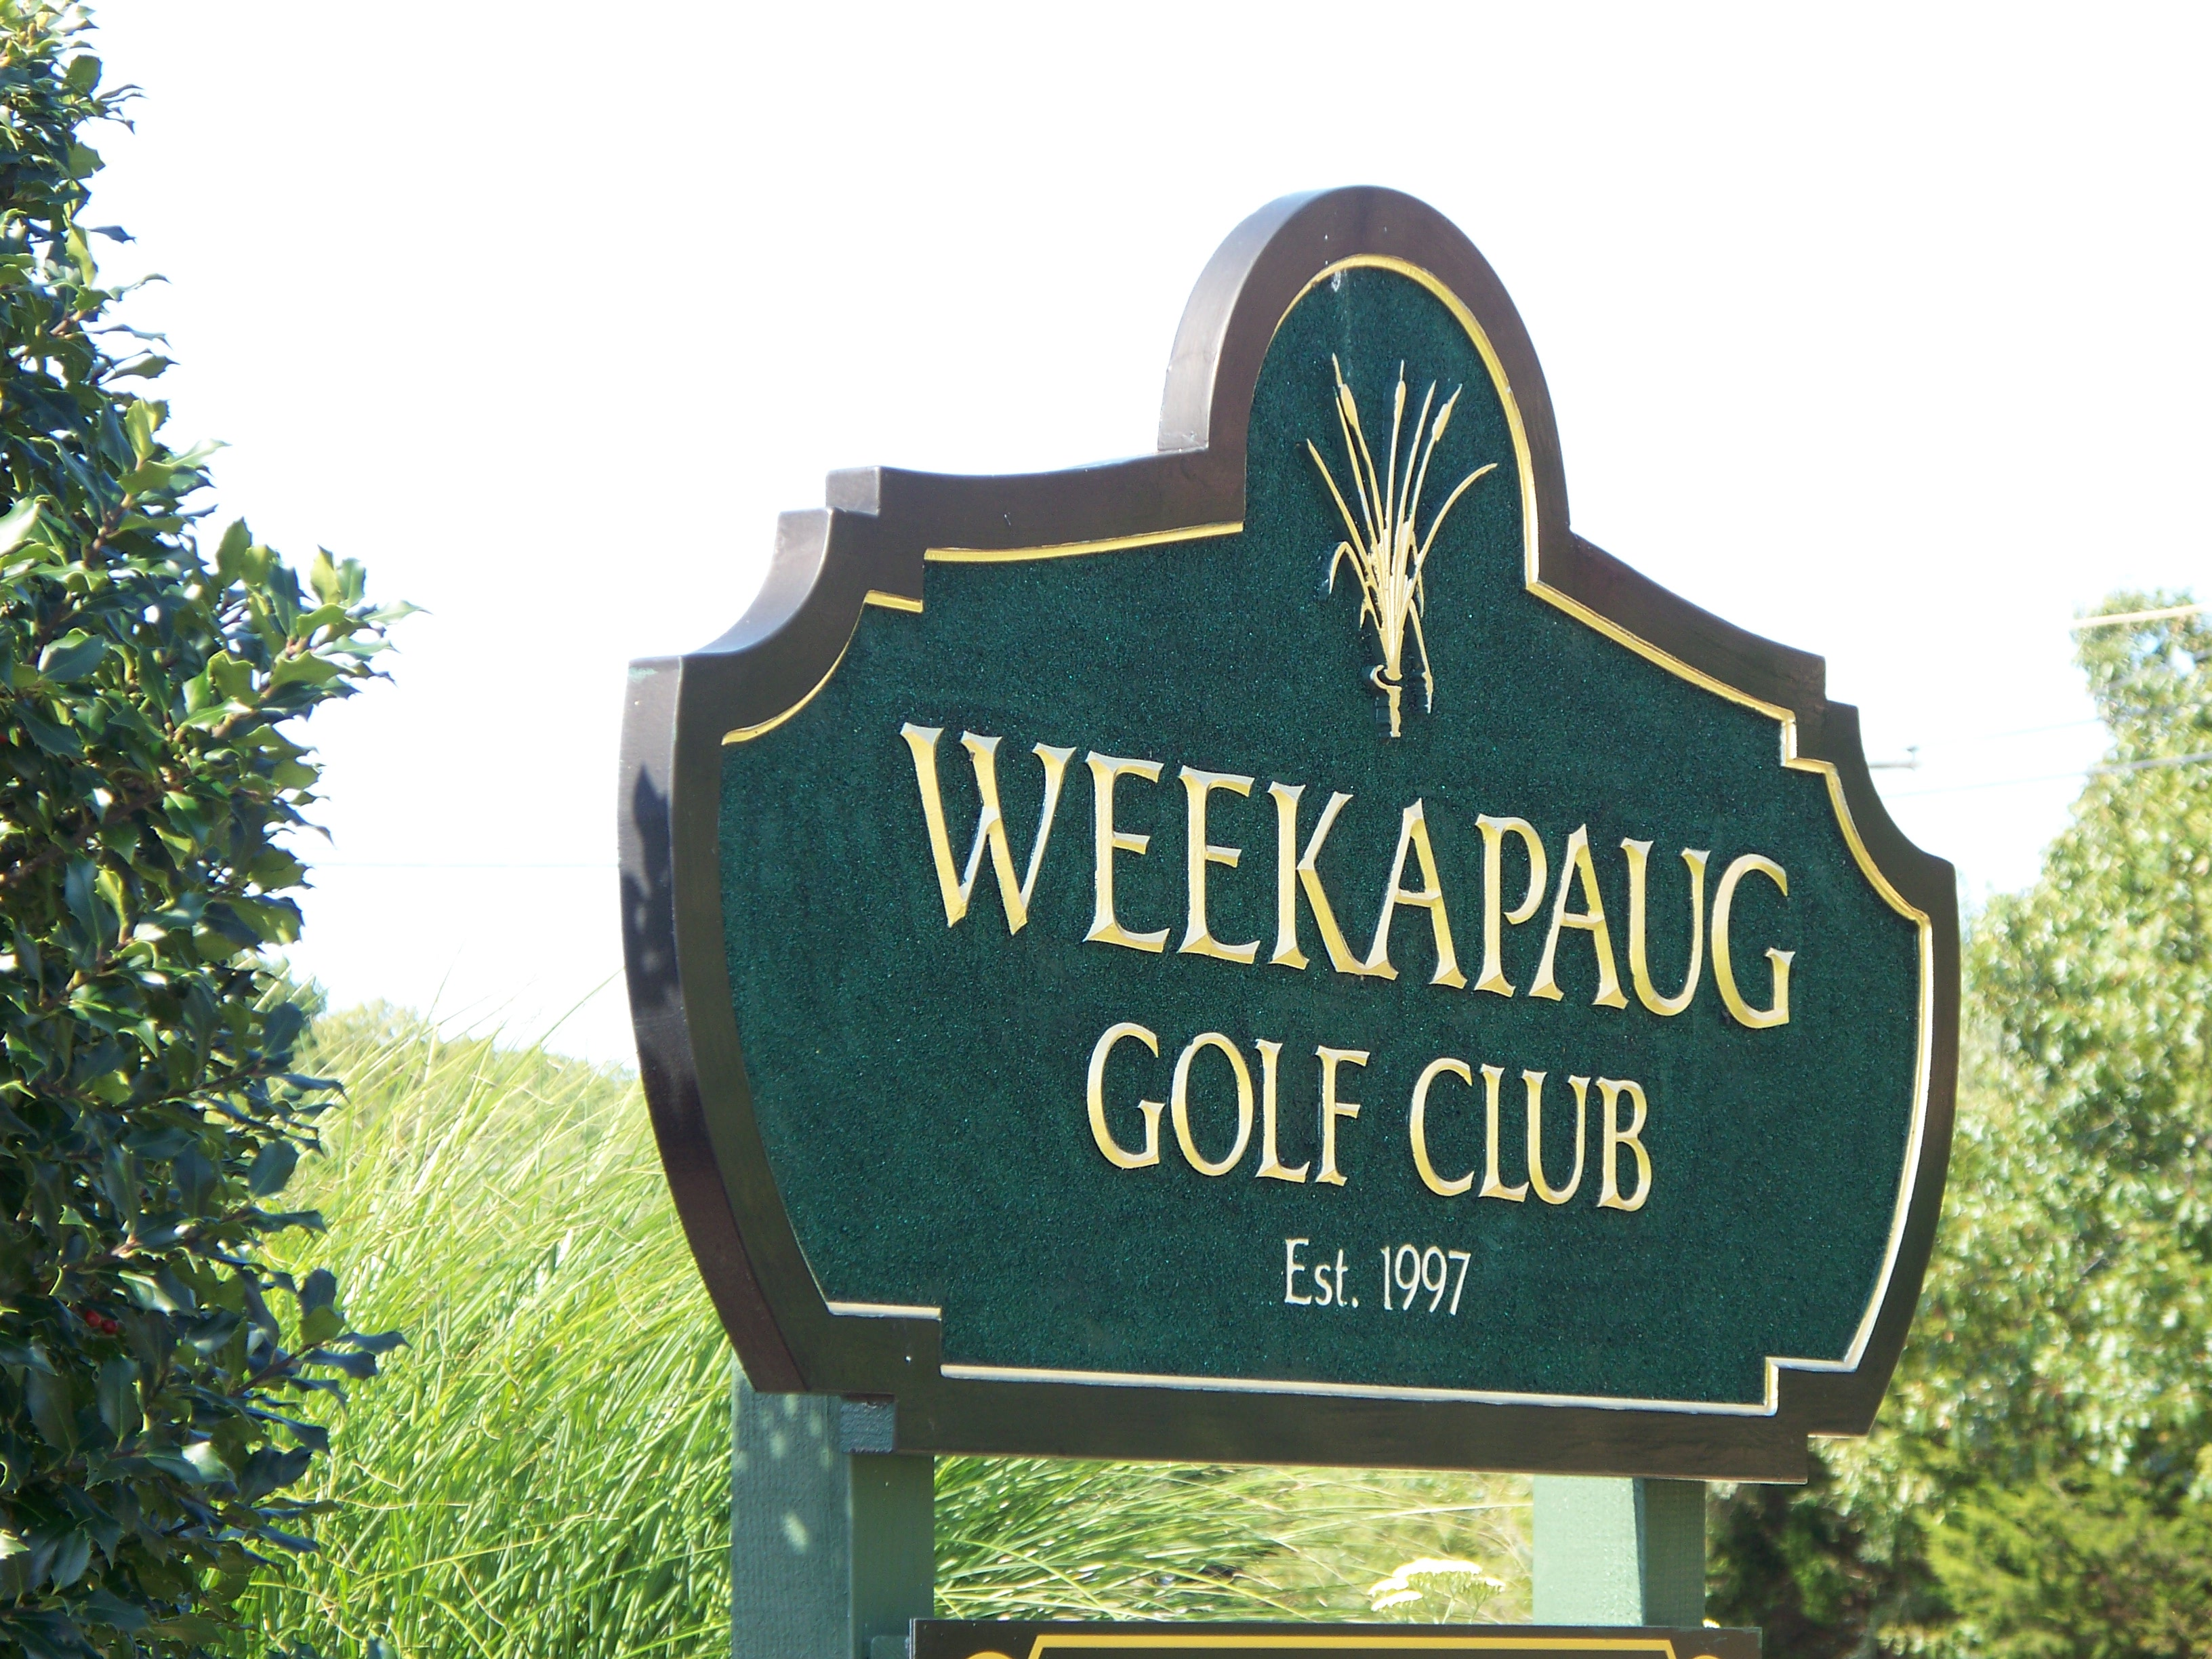 2B. The Weekapaug Golf Club